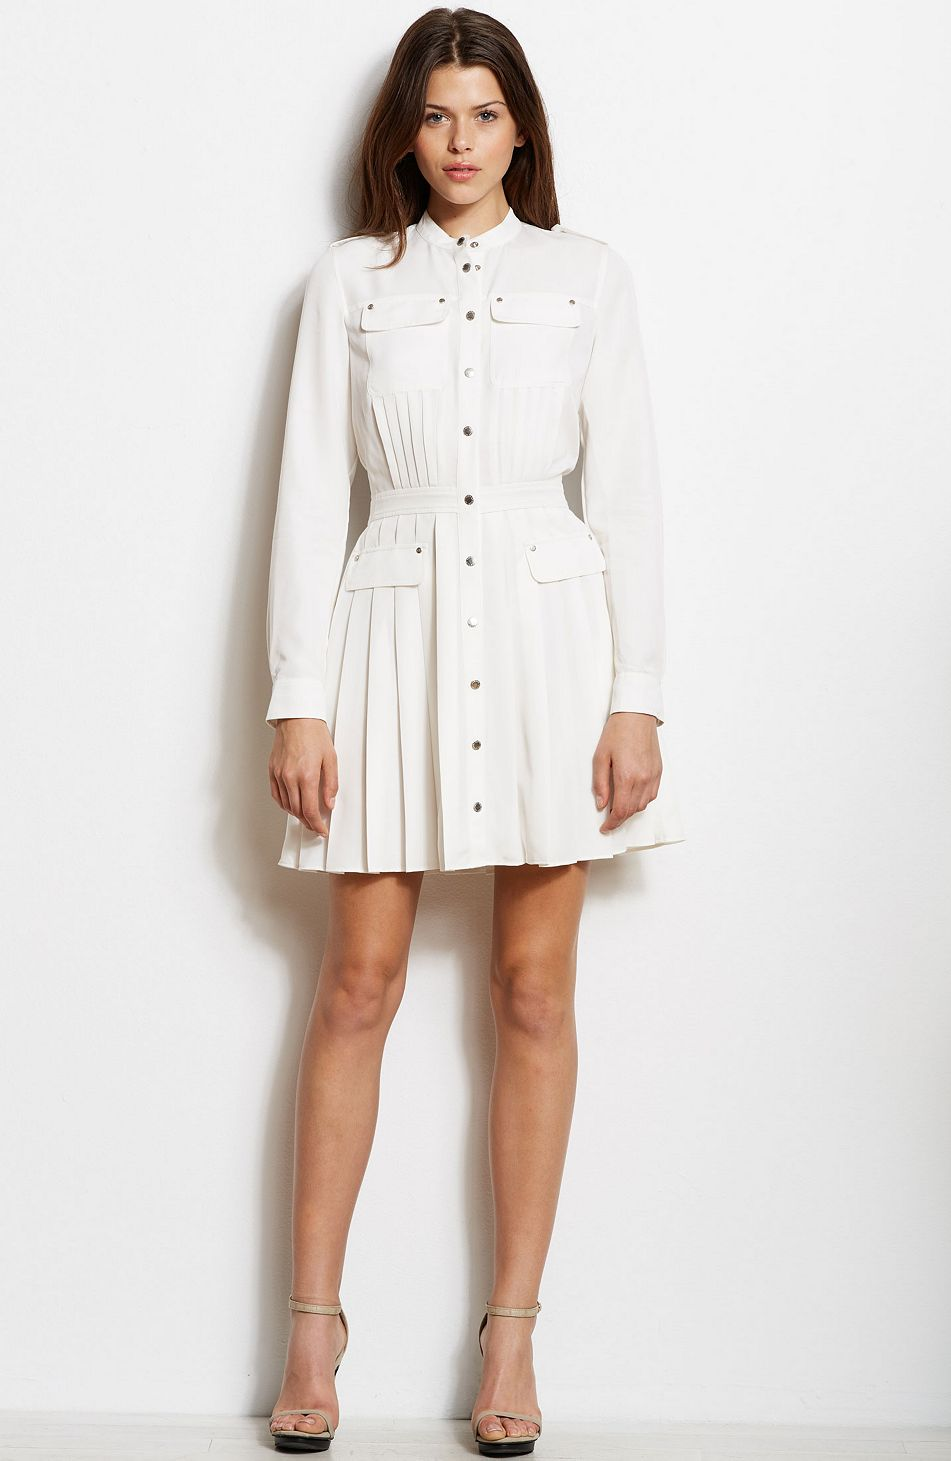 Galerry flared shirt dress